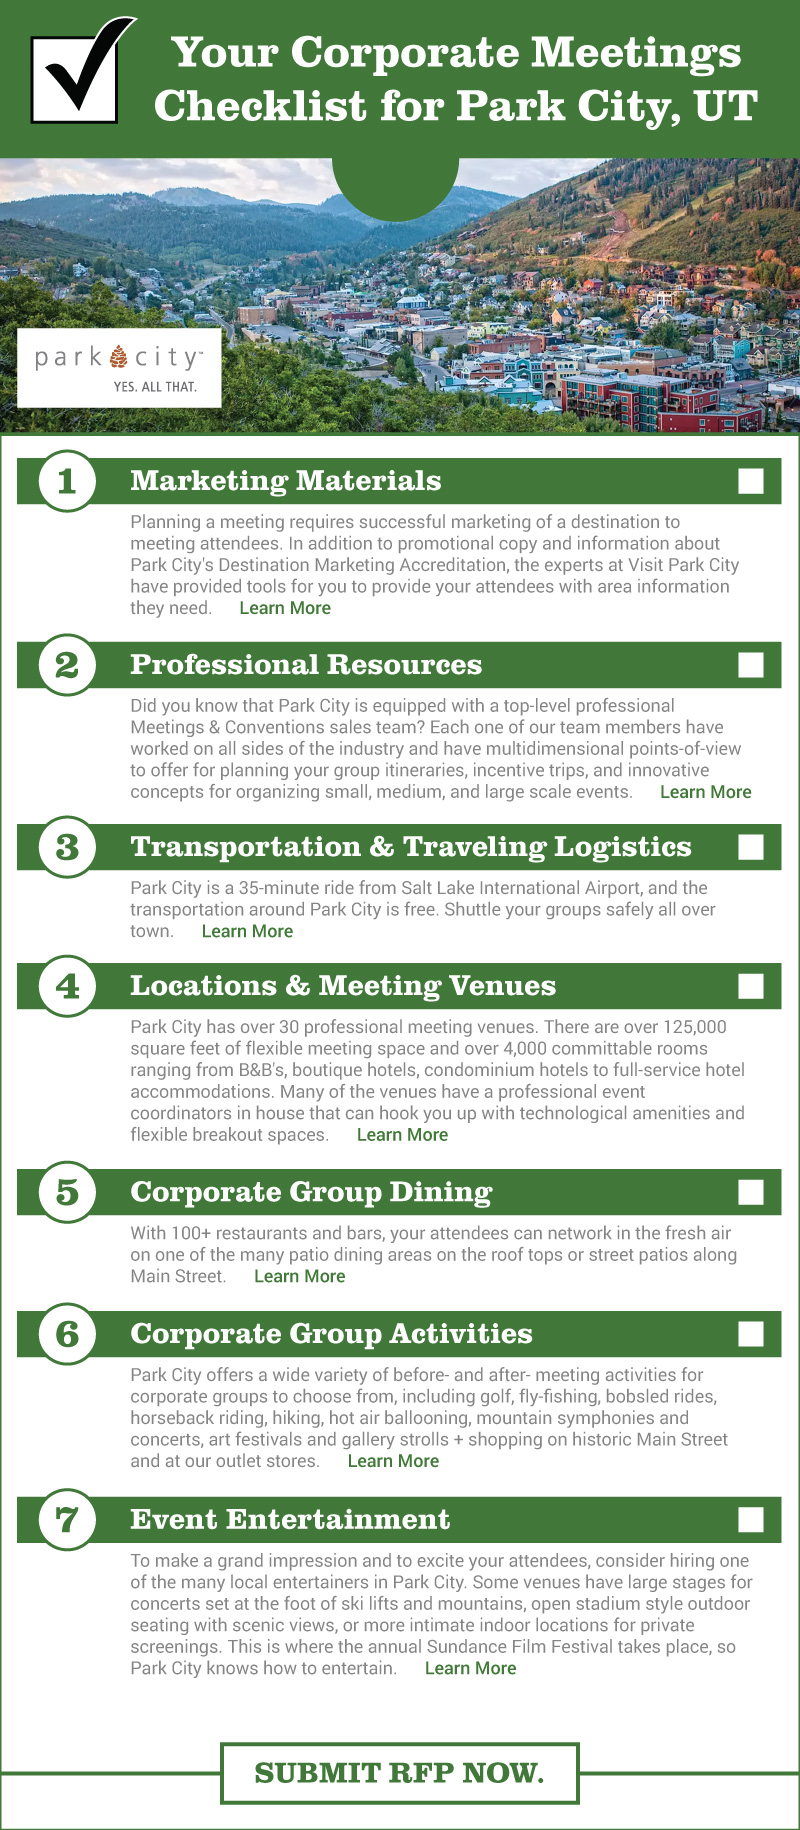 Park City Corporate Meetings Checklist